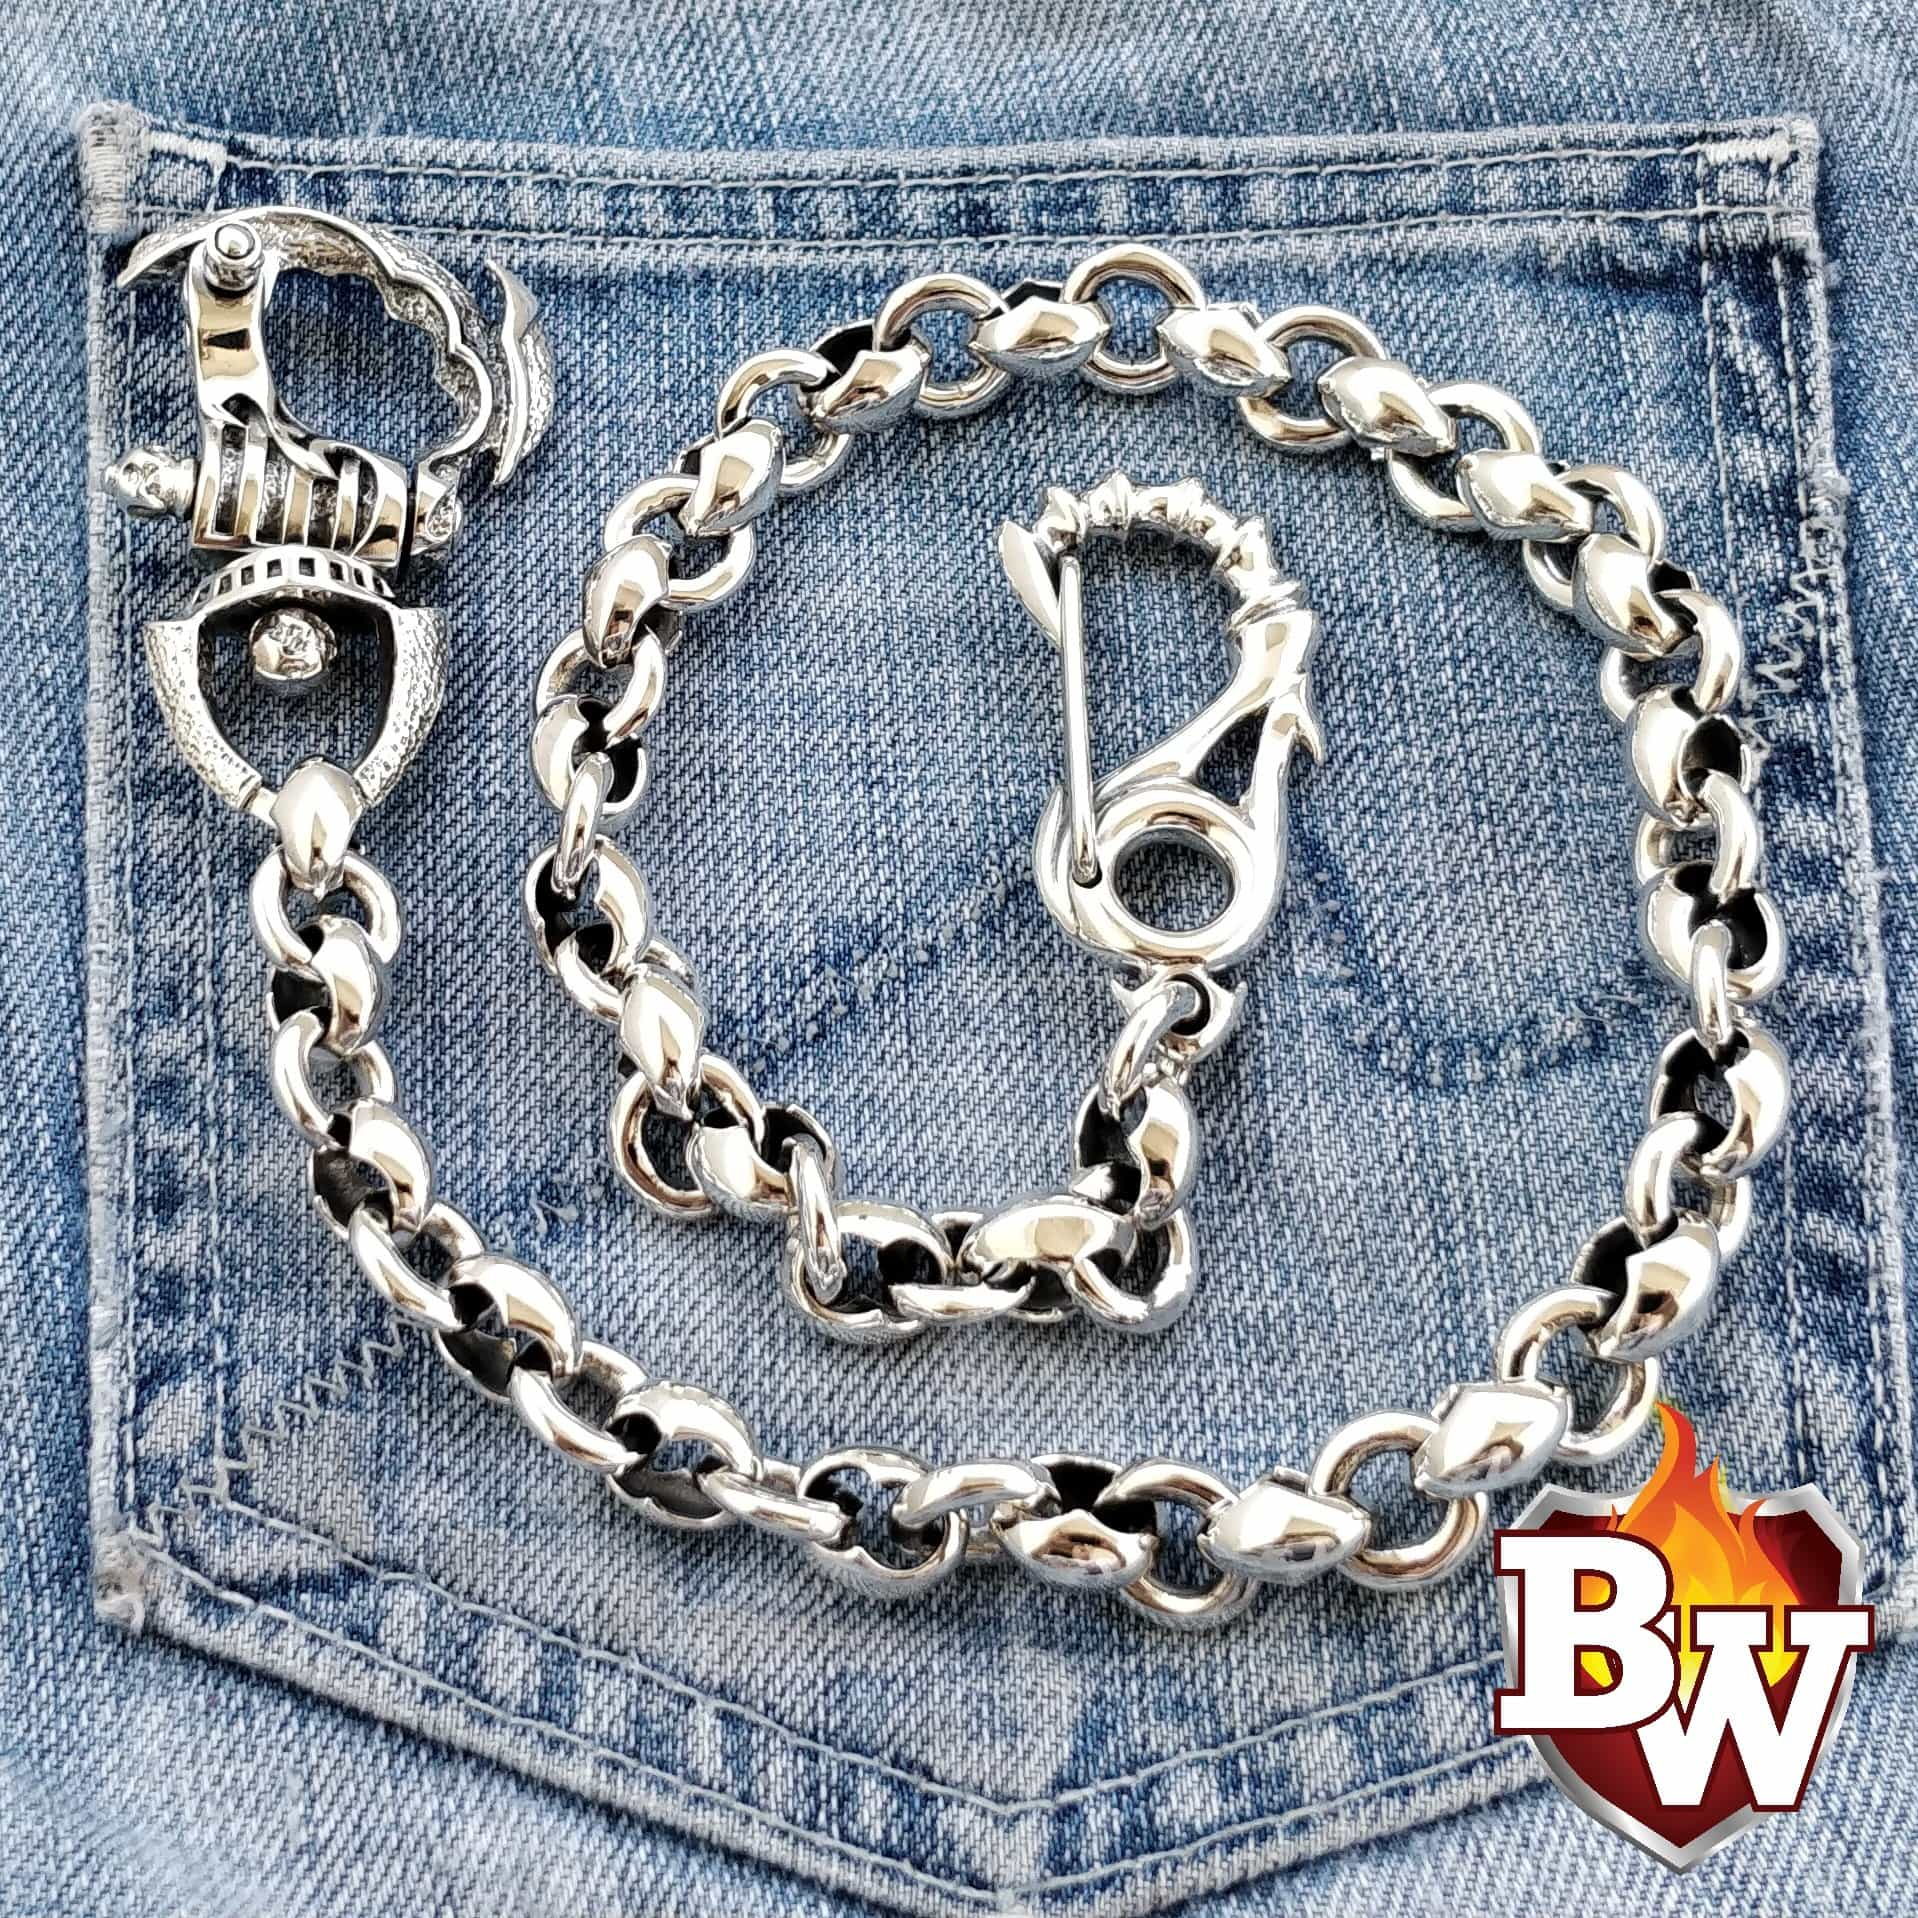 Wrath Custom German Silver Men's Biker Wallet Chain | Custom Handmade Men's Leather Wallets at Biker-Wallets.com